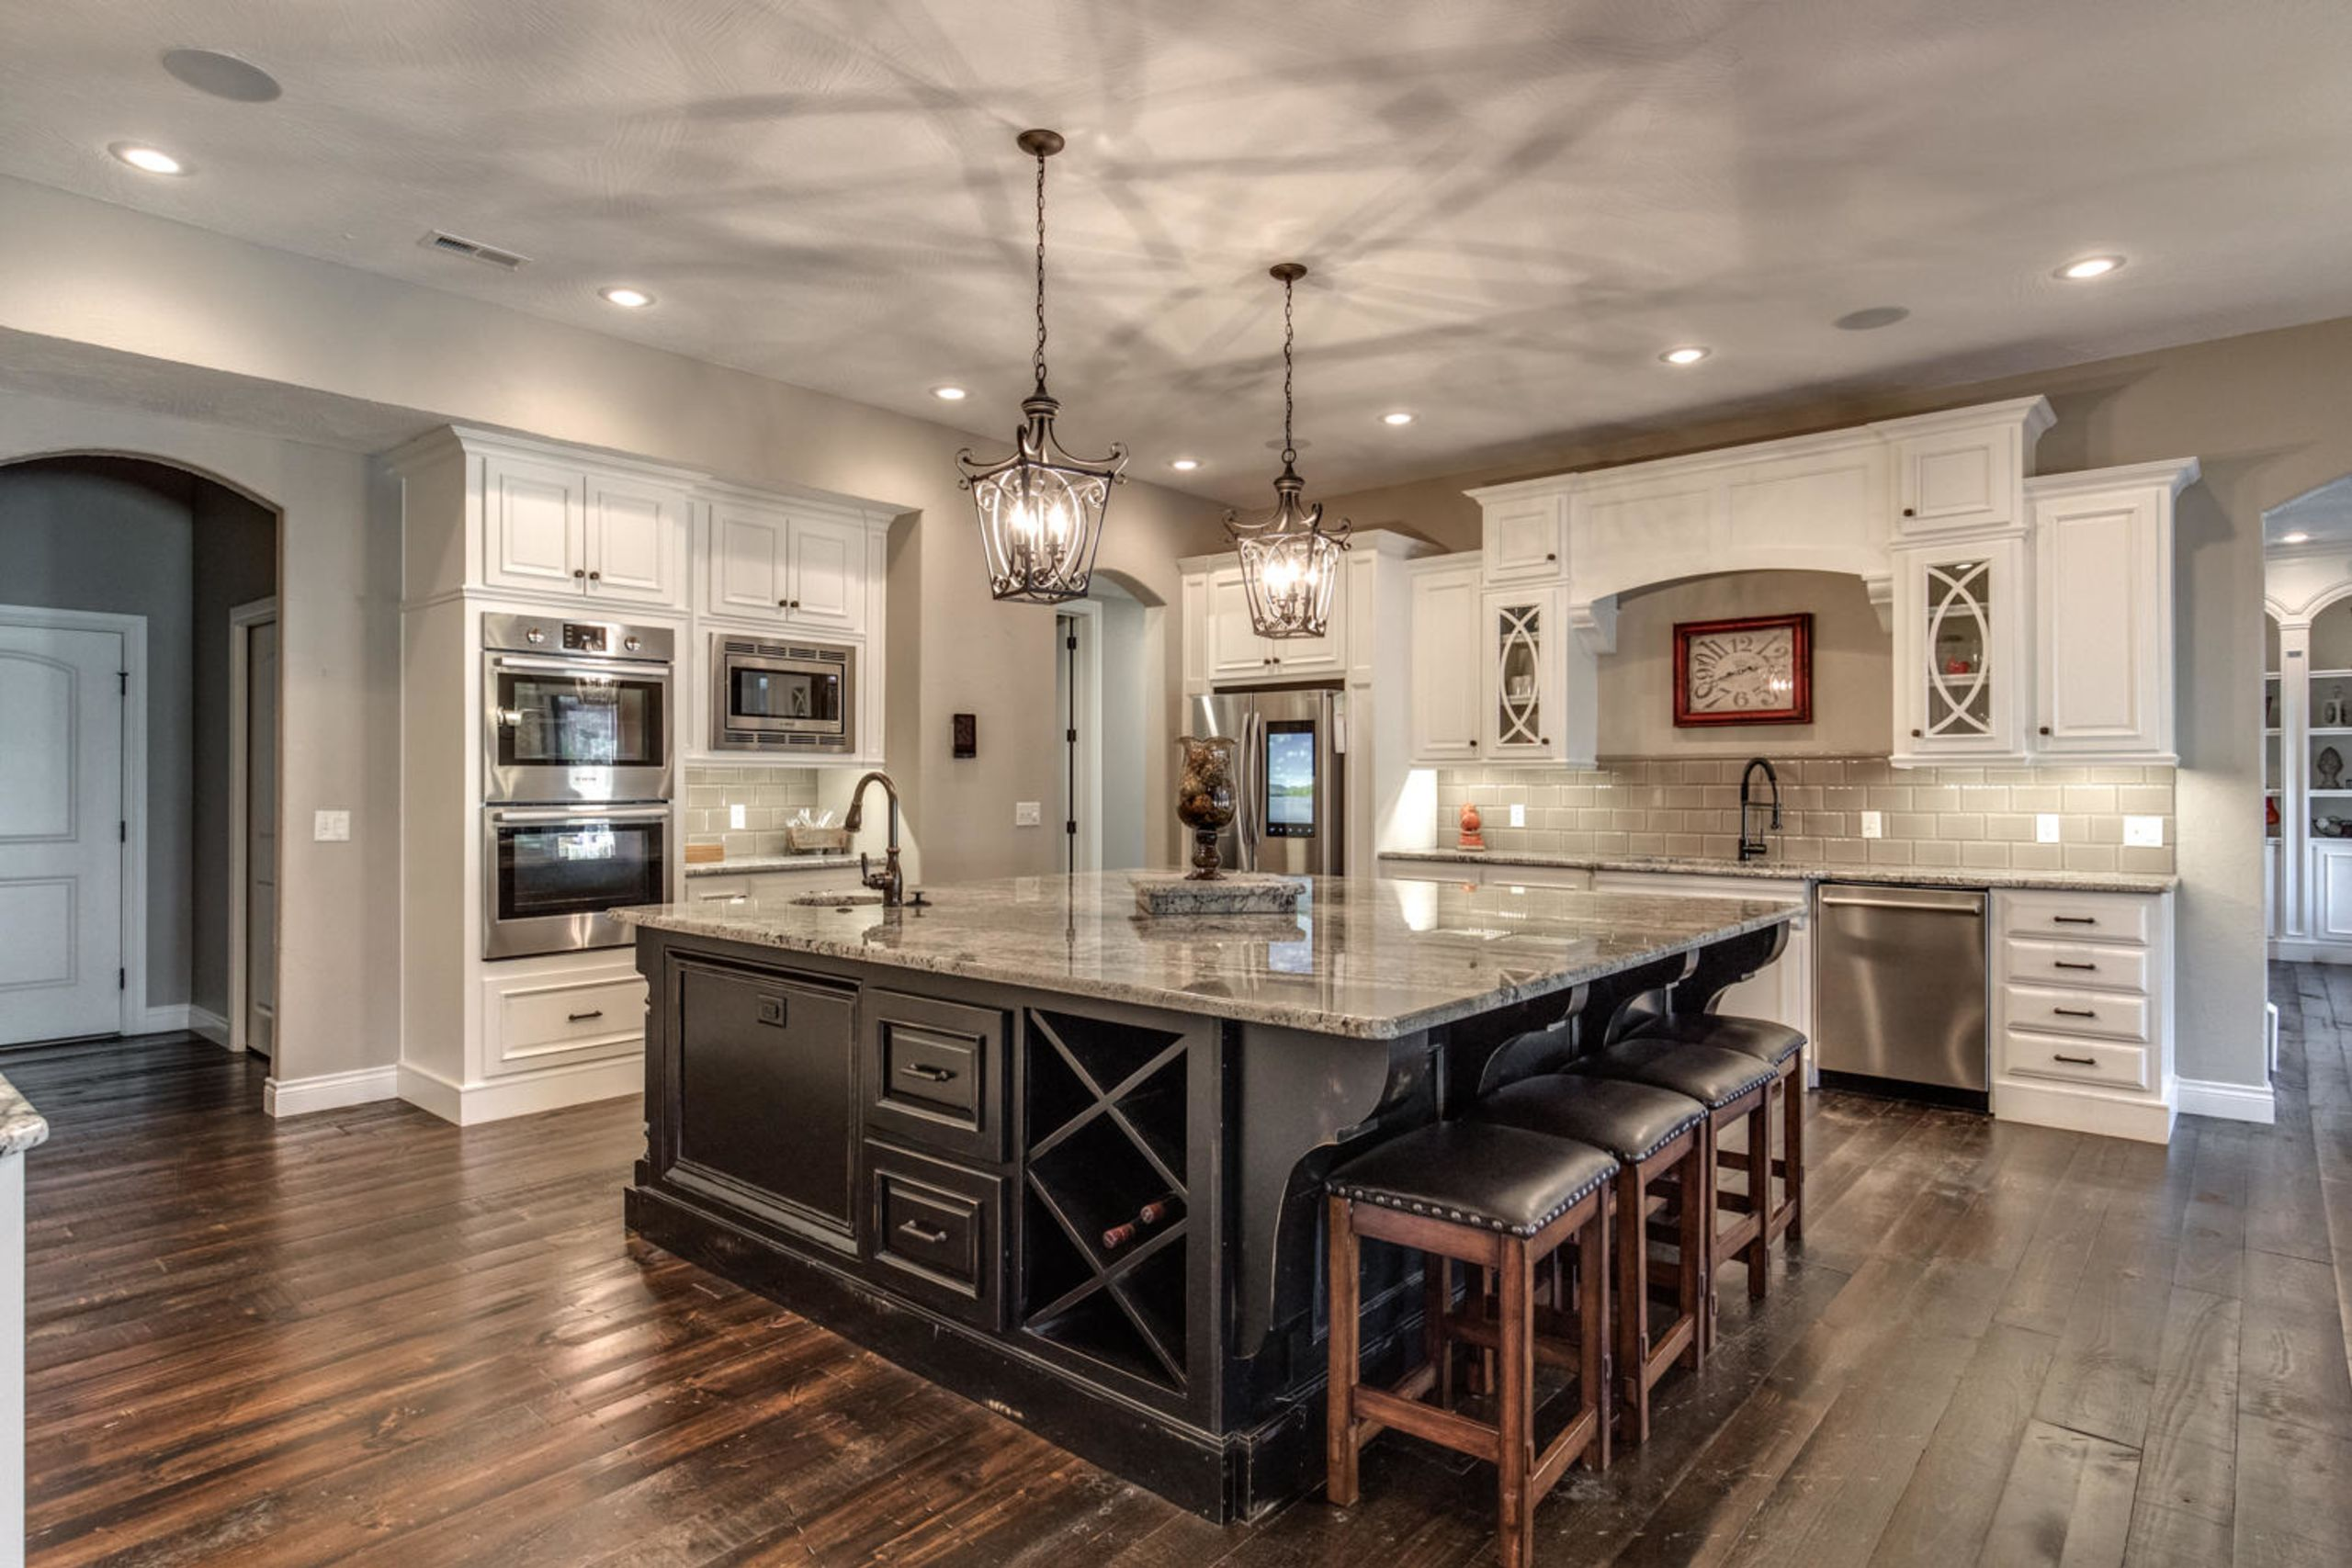 professional photography showcases your home in the best light